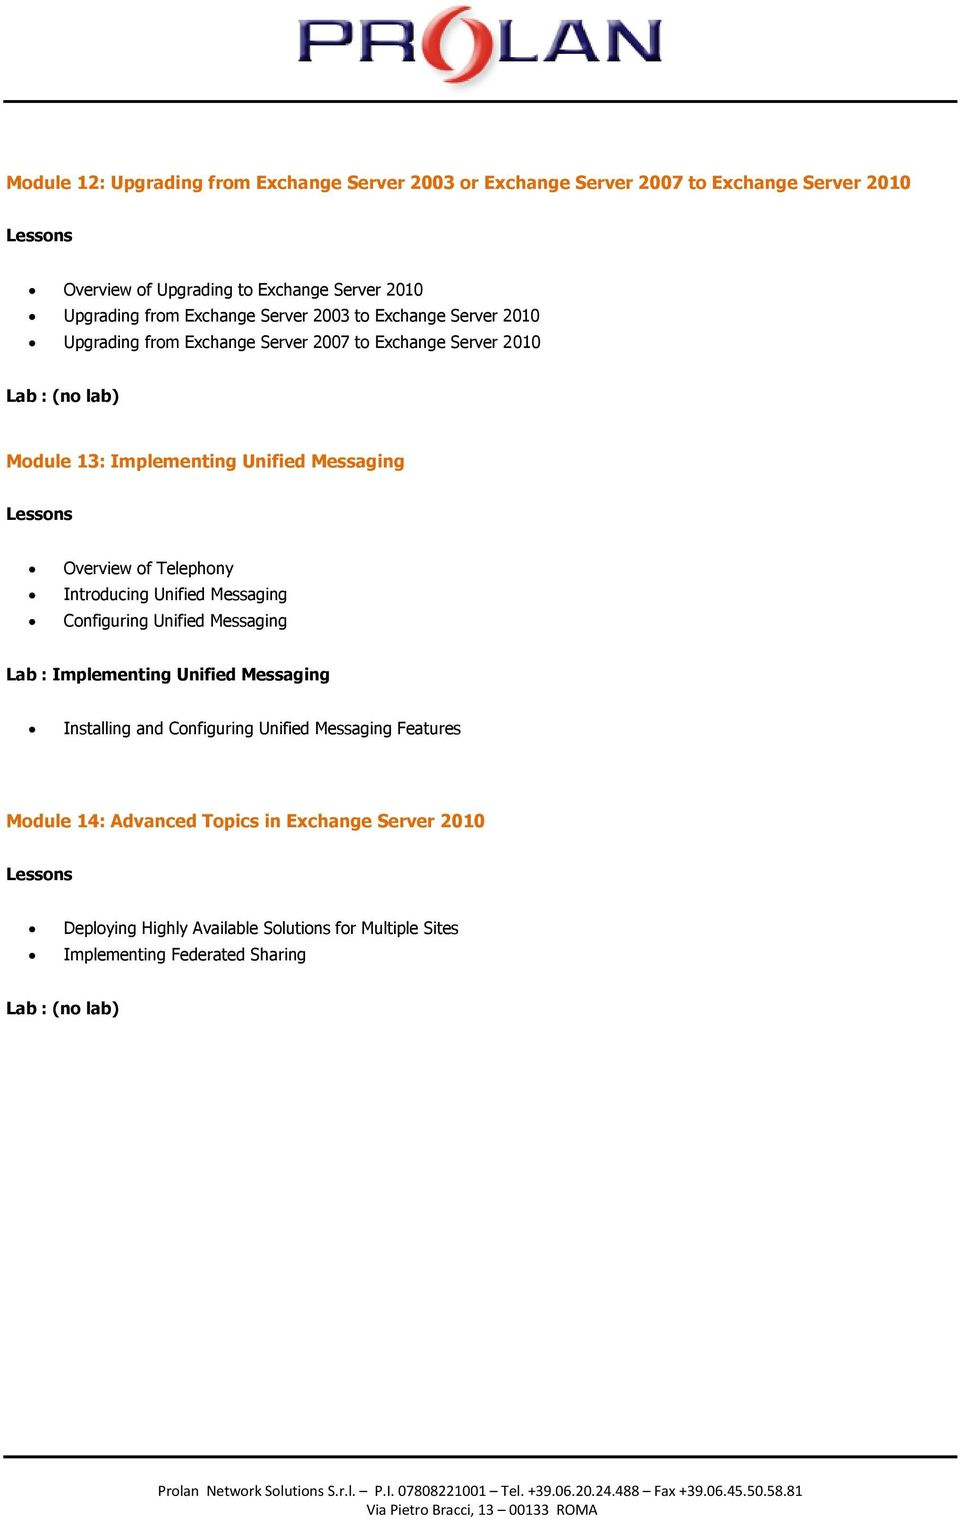 Messaging Overview of Telephony Introducing Unified Messaging Configuring Unified Messaging Lab : Implementing Unified Messaging Installing and Configuring